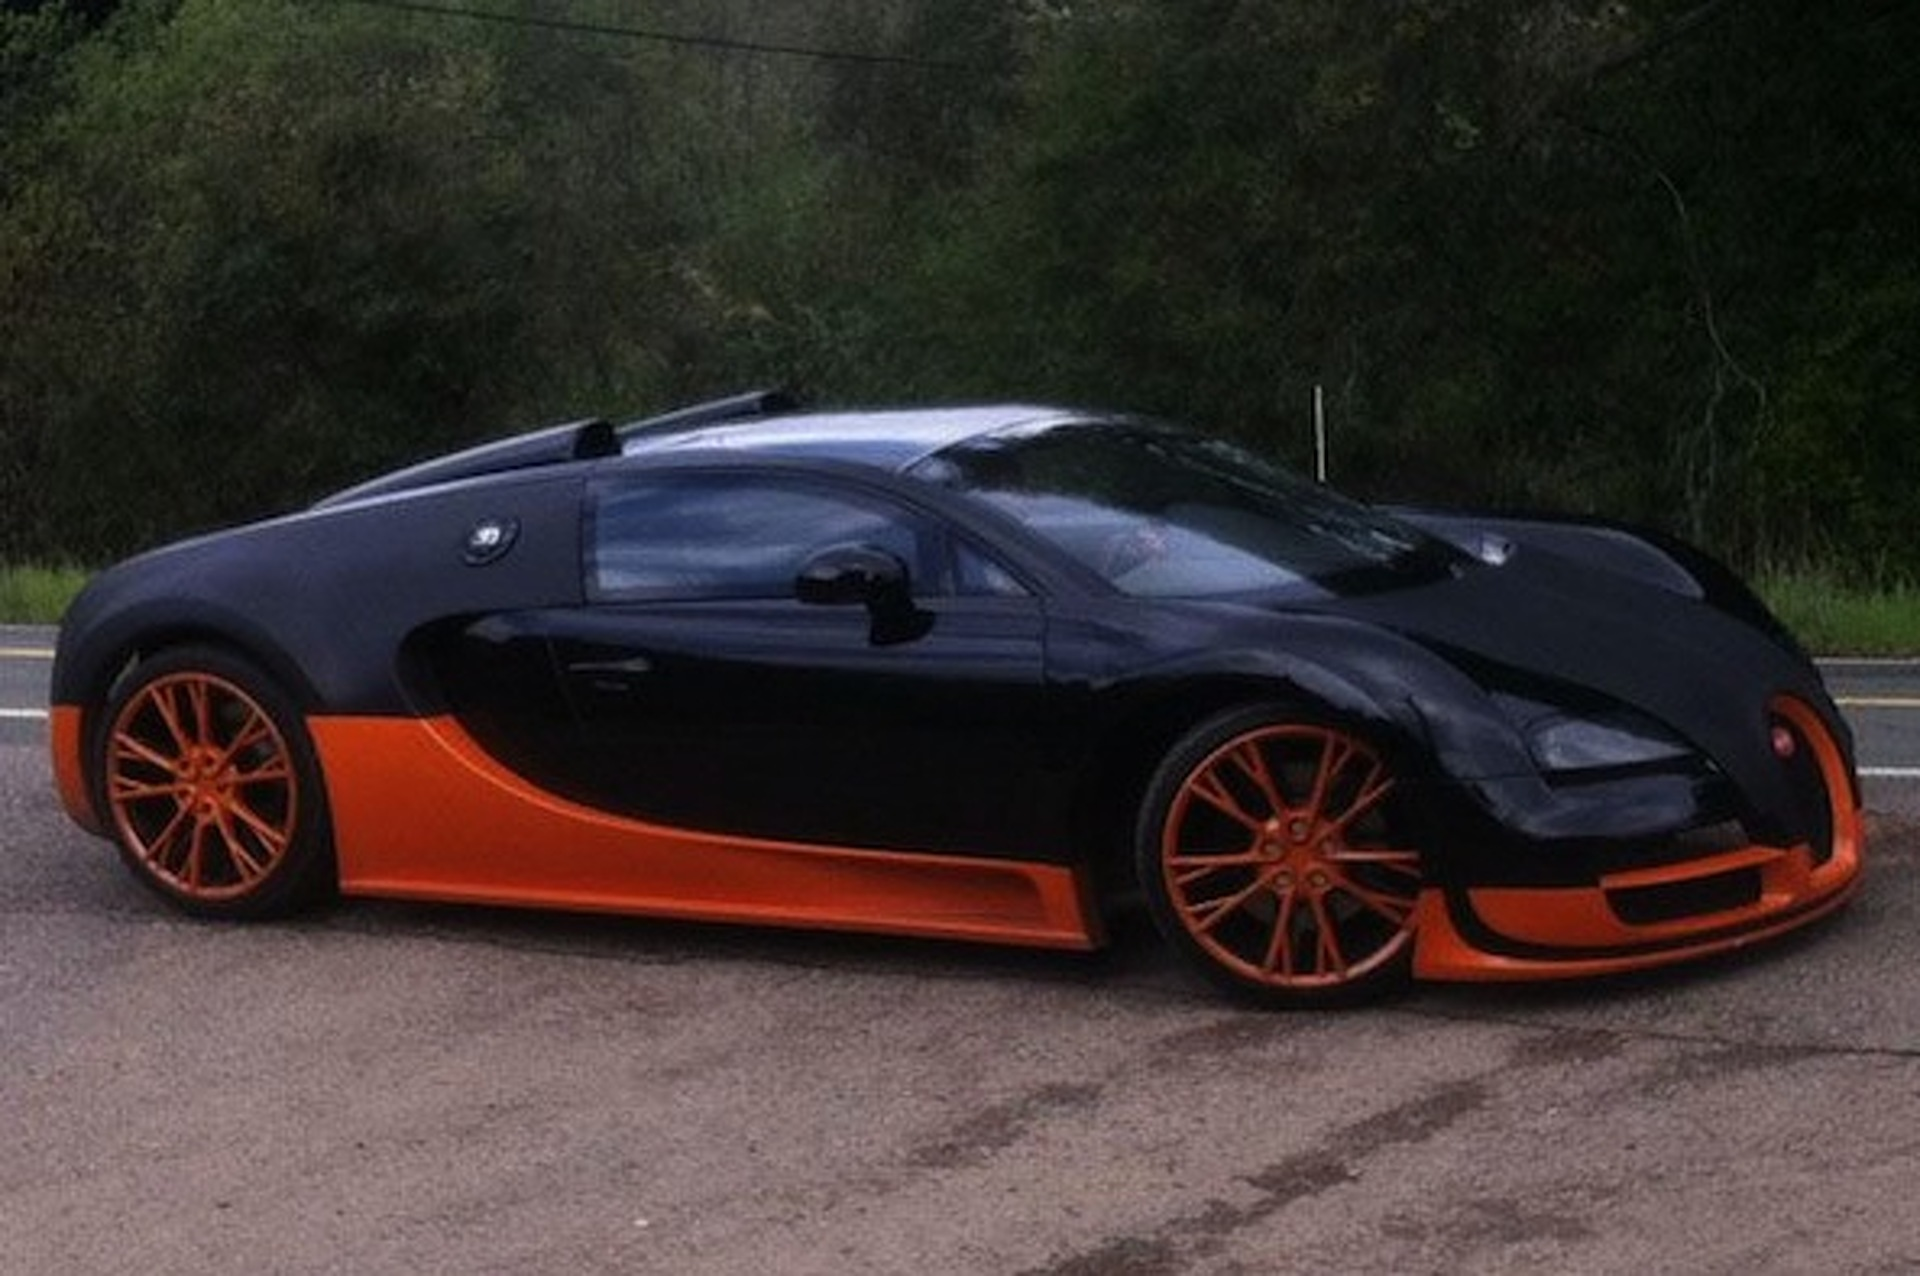 Meet The Fake Supercars Used In Upcoming Need For Speed Film